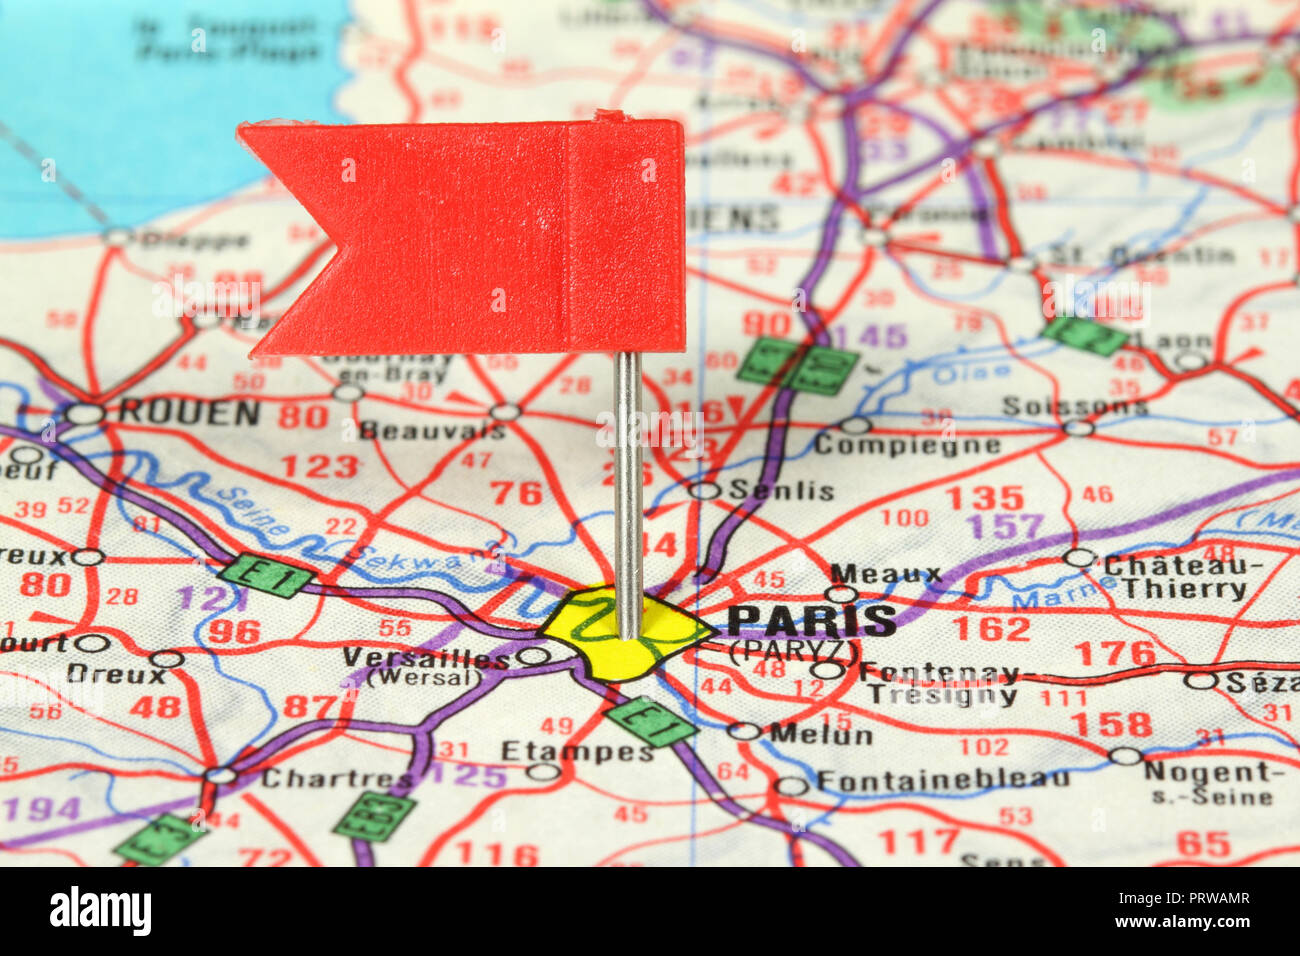 Map Of France Showing Paris.Paris Famous City In France Red Flag Pin On An Old Map Showing